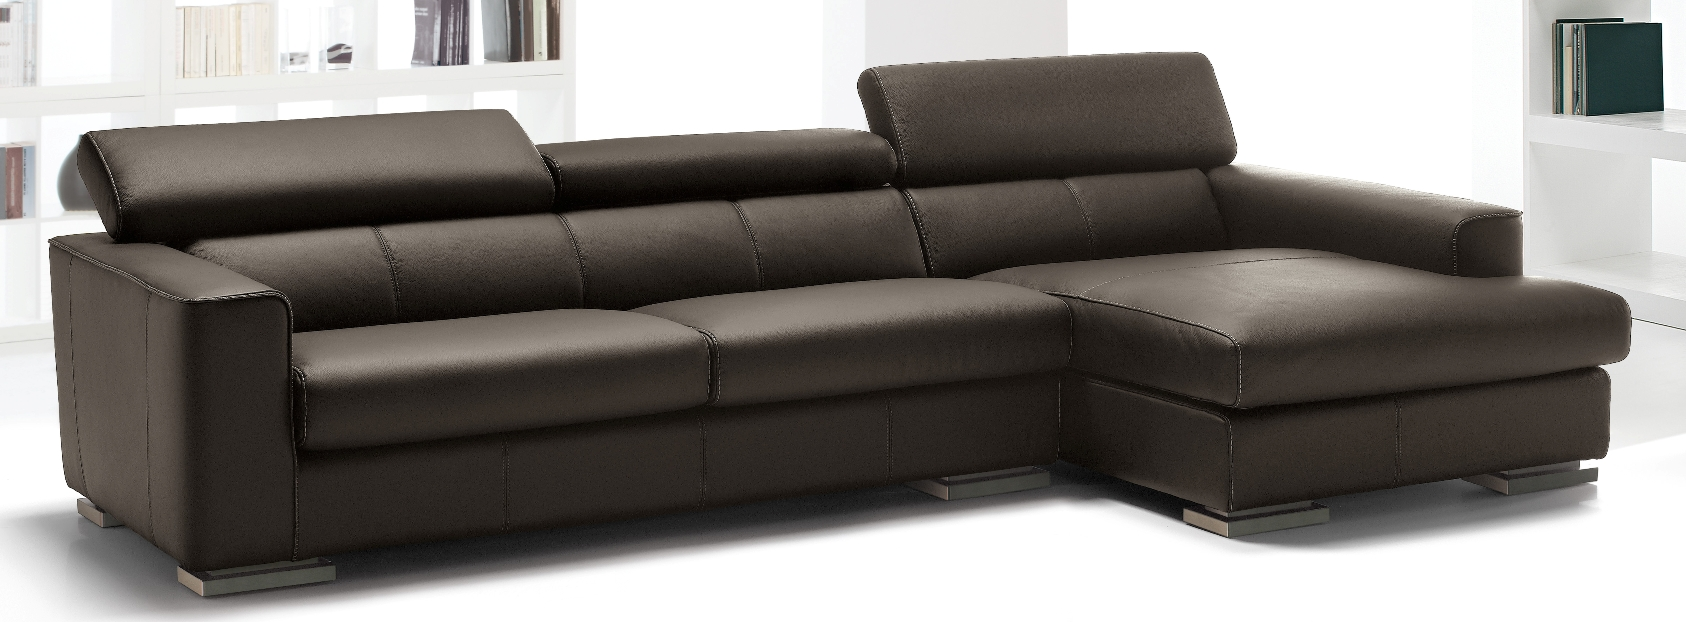 Luxury Leather Ottoman ~ Fine sofas whole design warehouse furniture thesofa